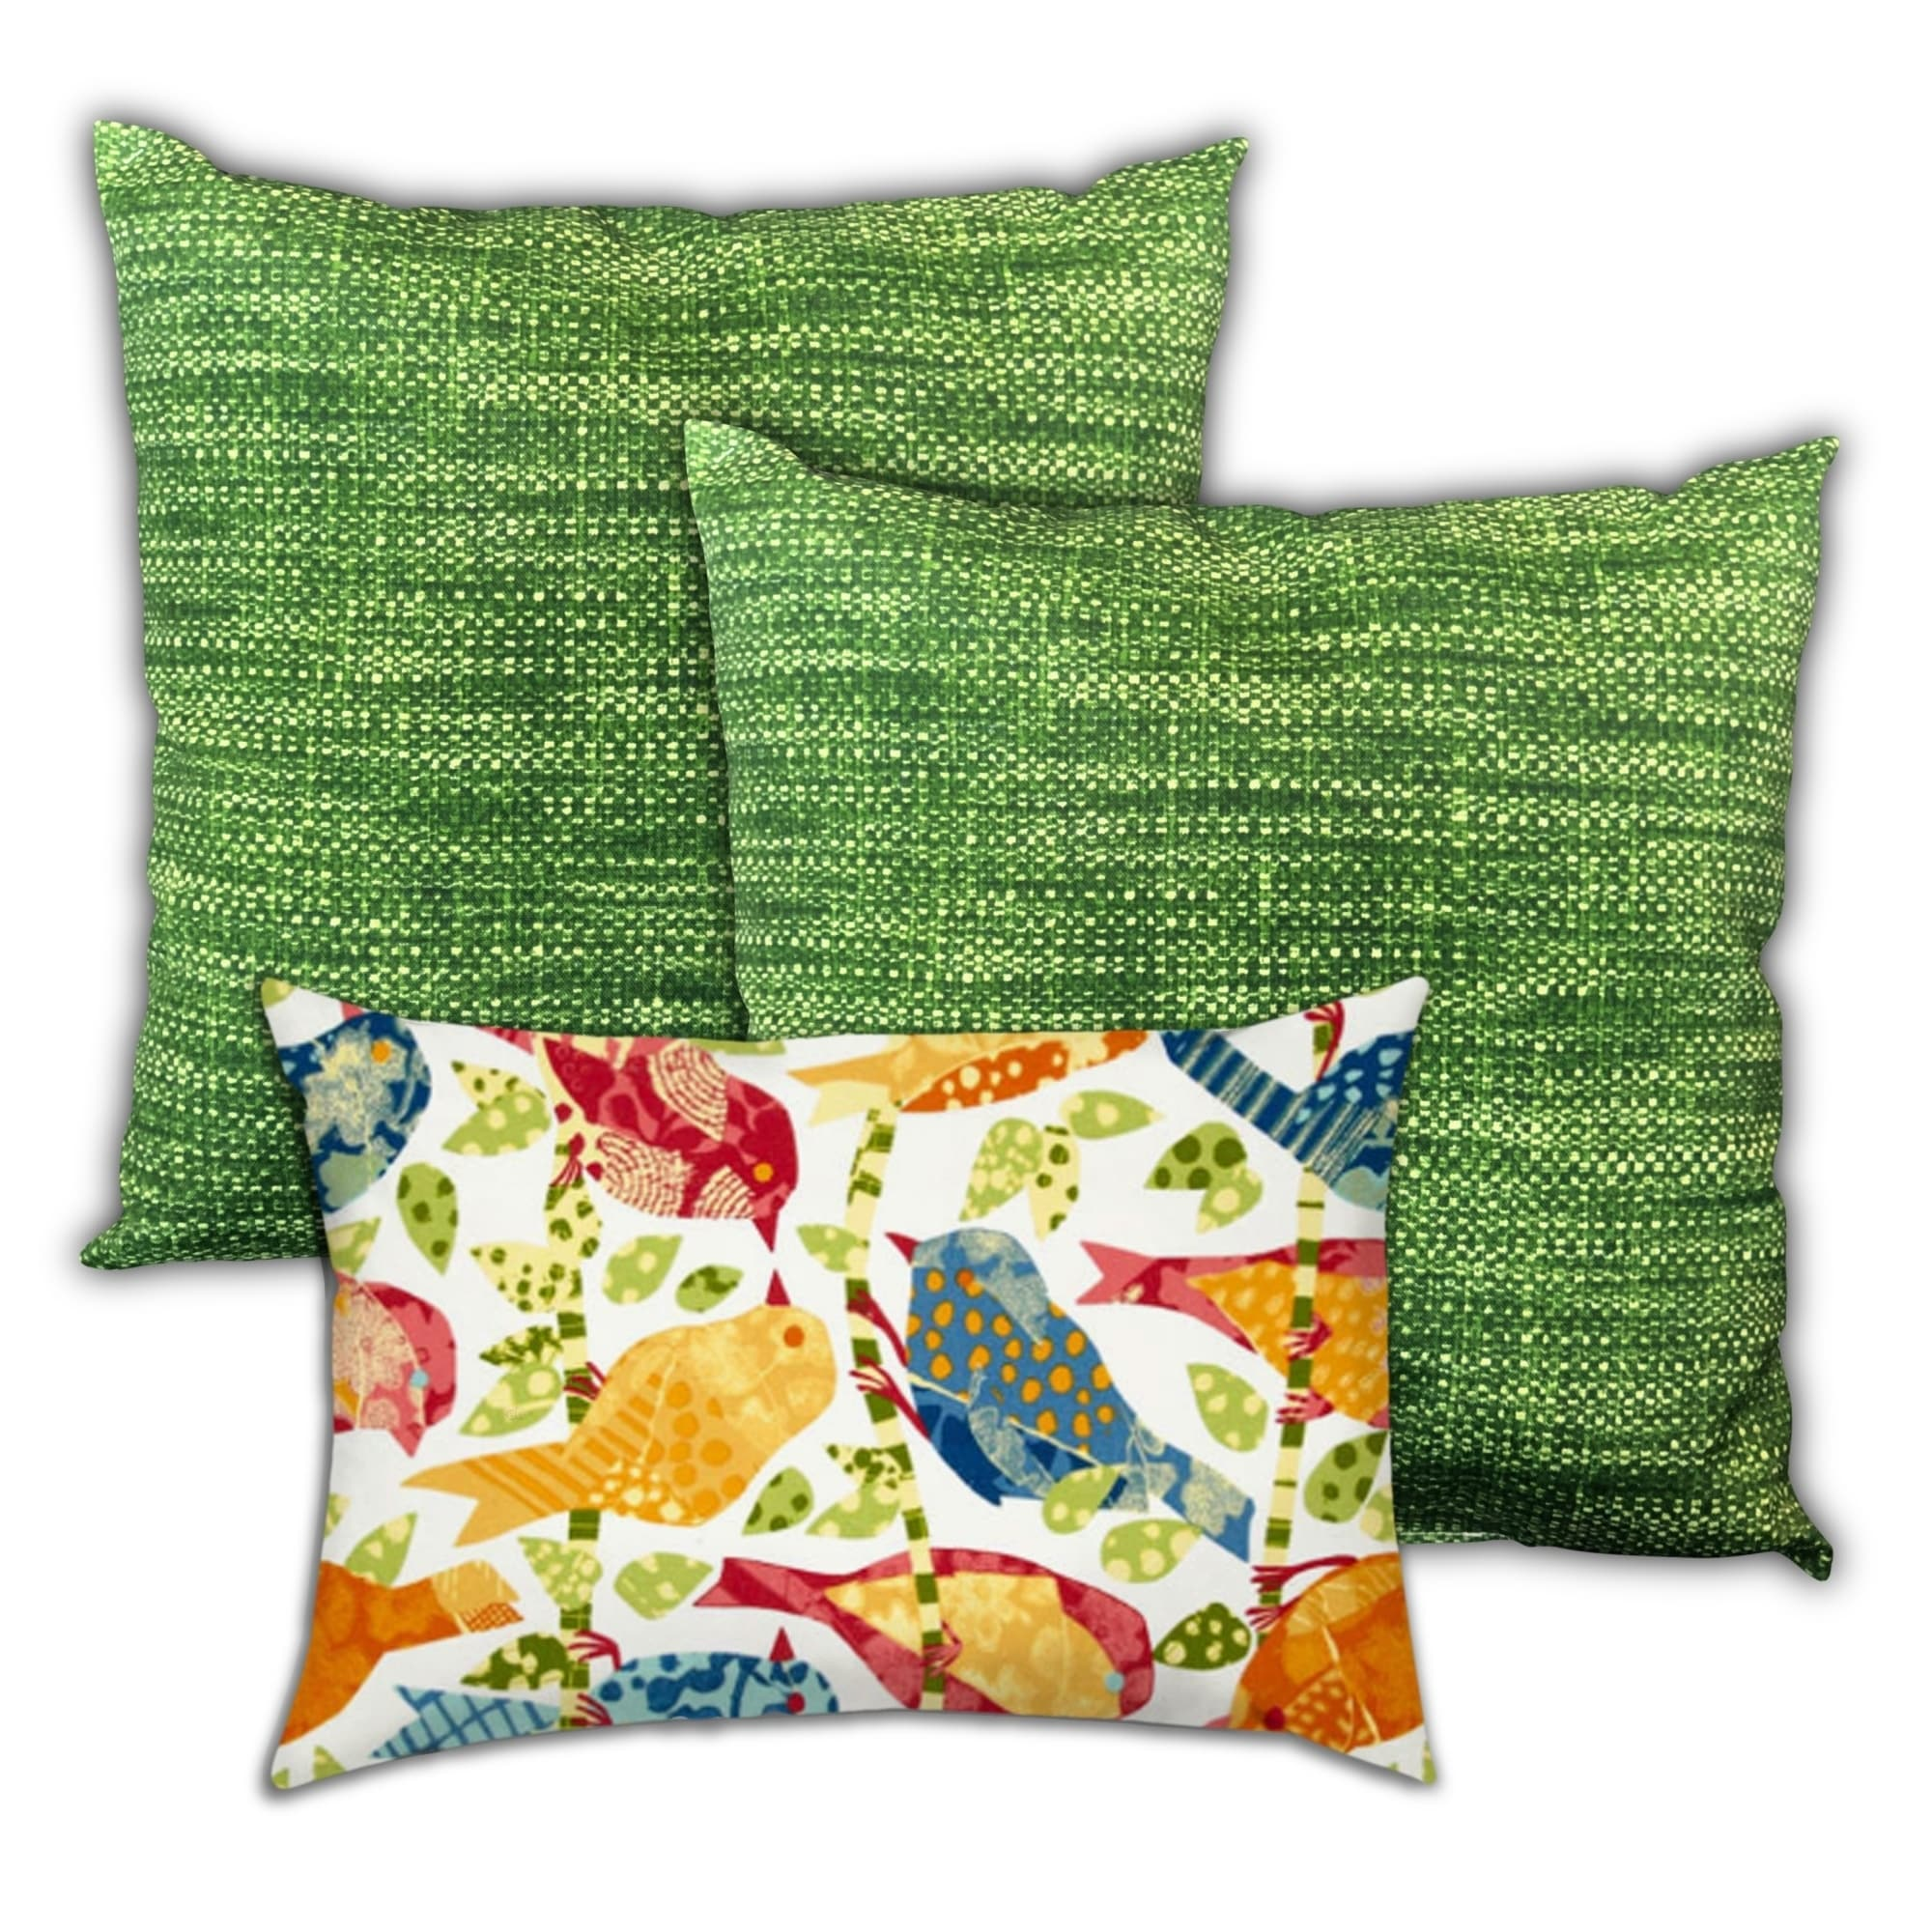 Birds Singing On A Wire Indoor Outdoor Zippered Pillow Cover Set Of 3 Pillow Overstock 31211523